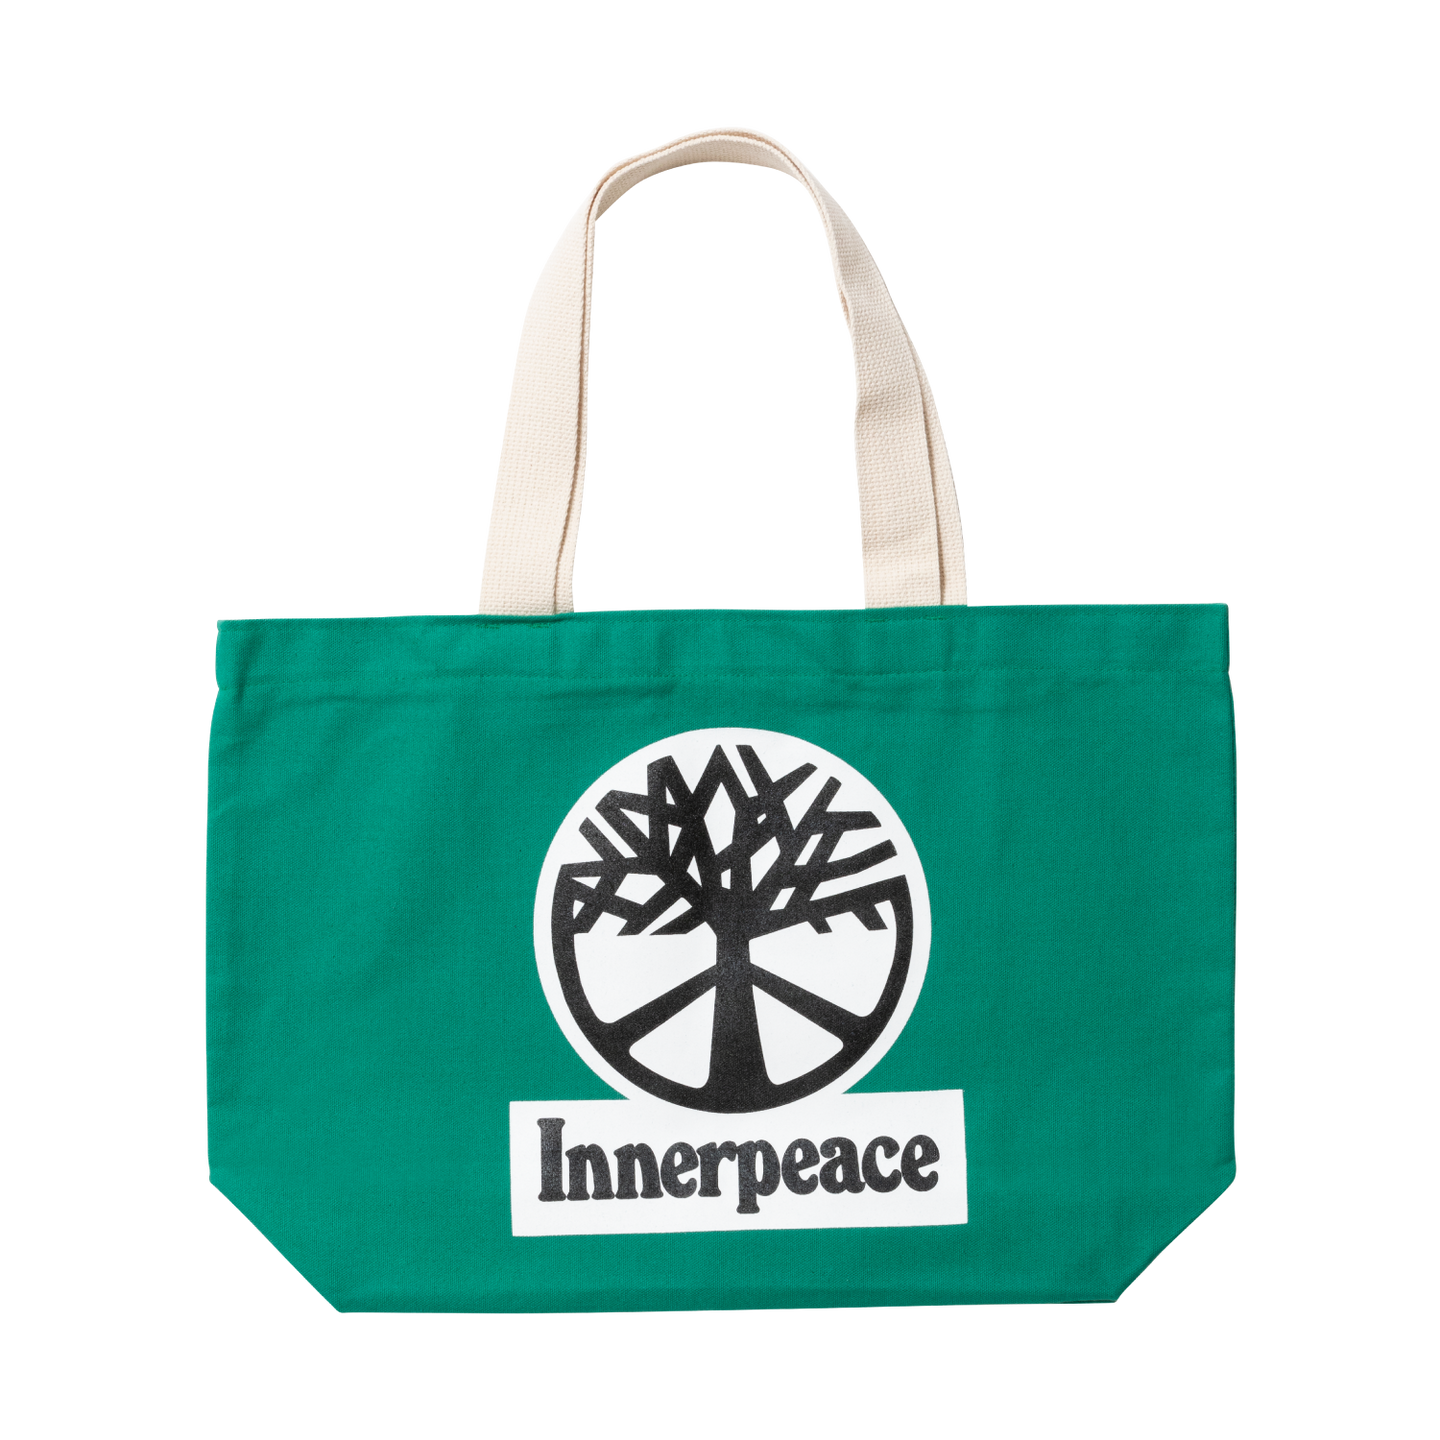 Innerpeace Tote